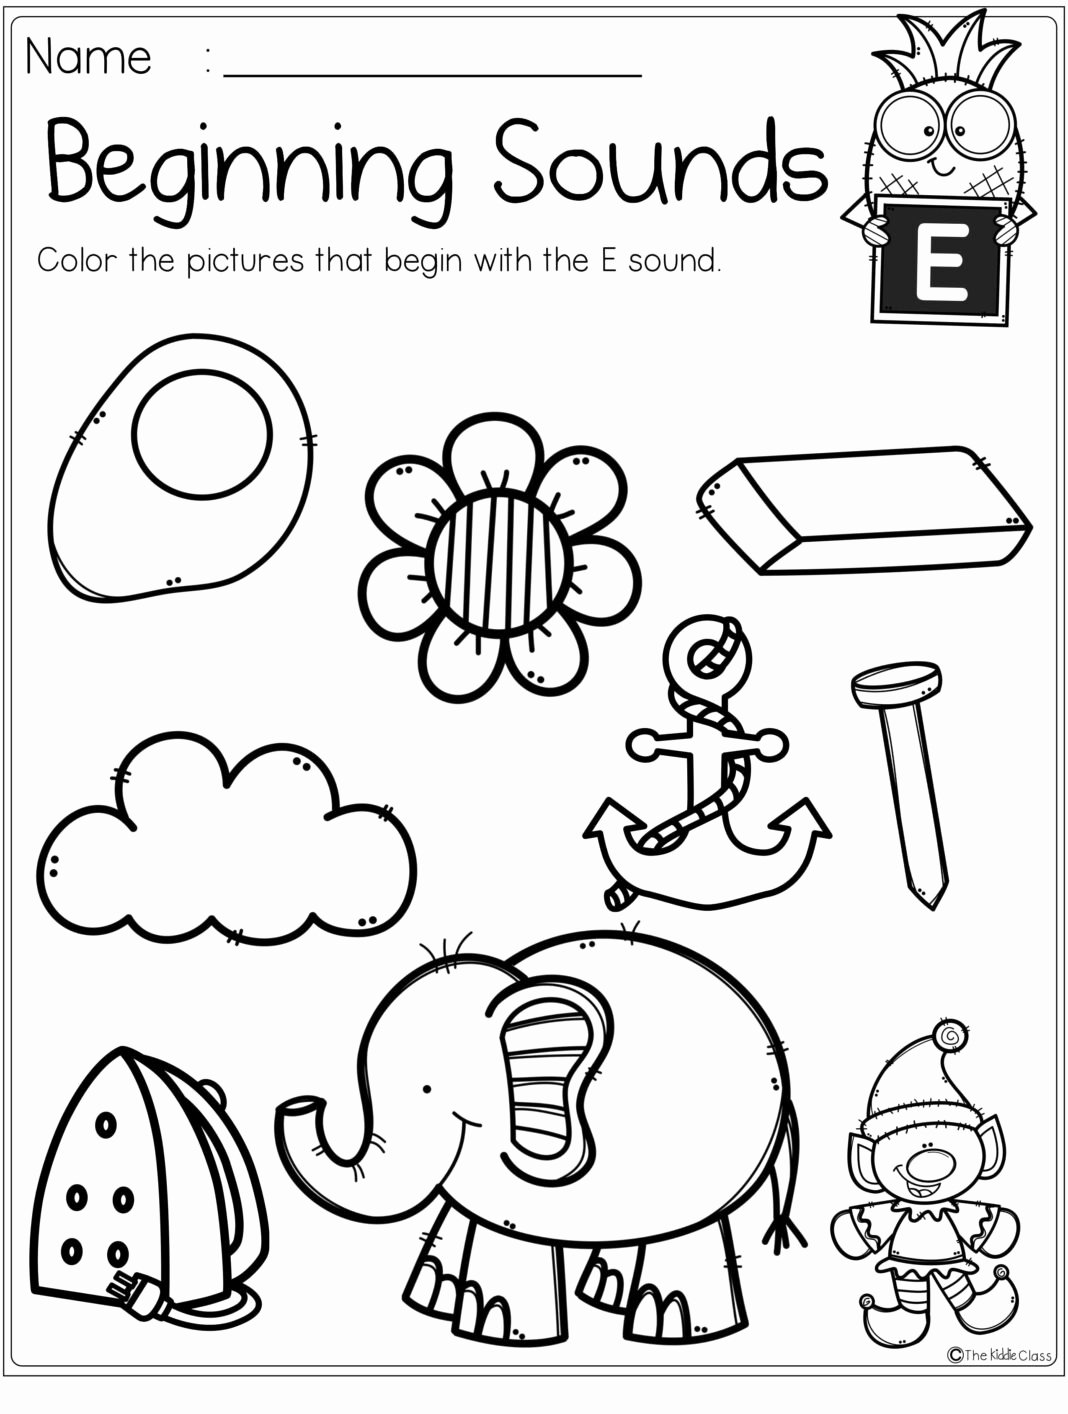 Free Printable Beginning sounds Worksheets for Preschoolers Inspirational Worksheets Alphabet Beginning sounds Printables Preschool